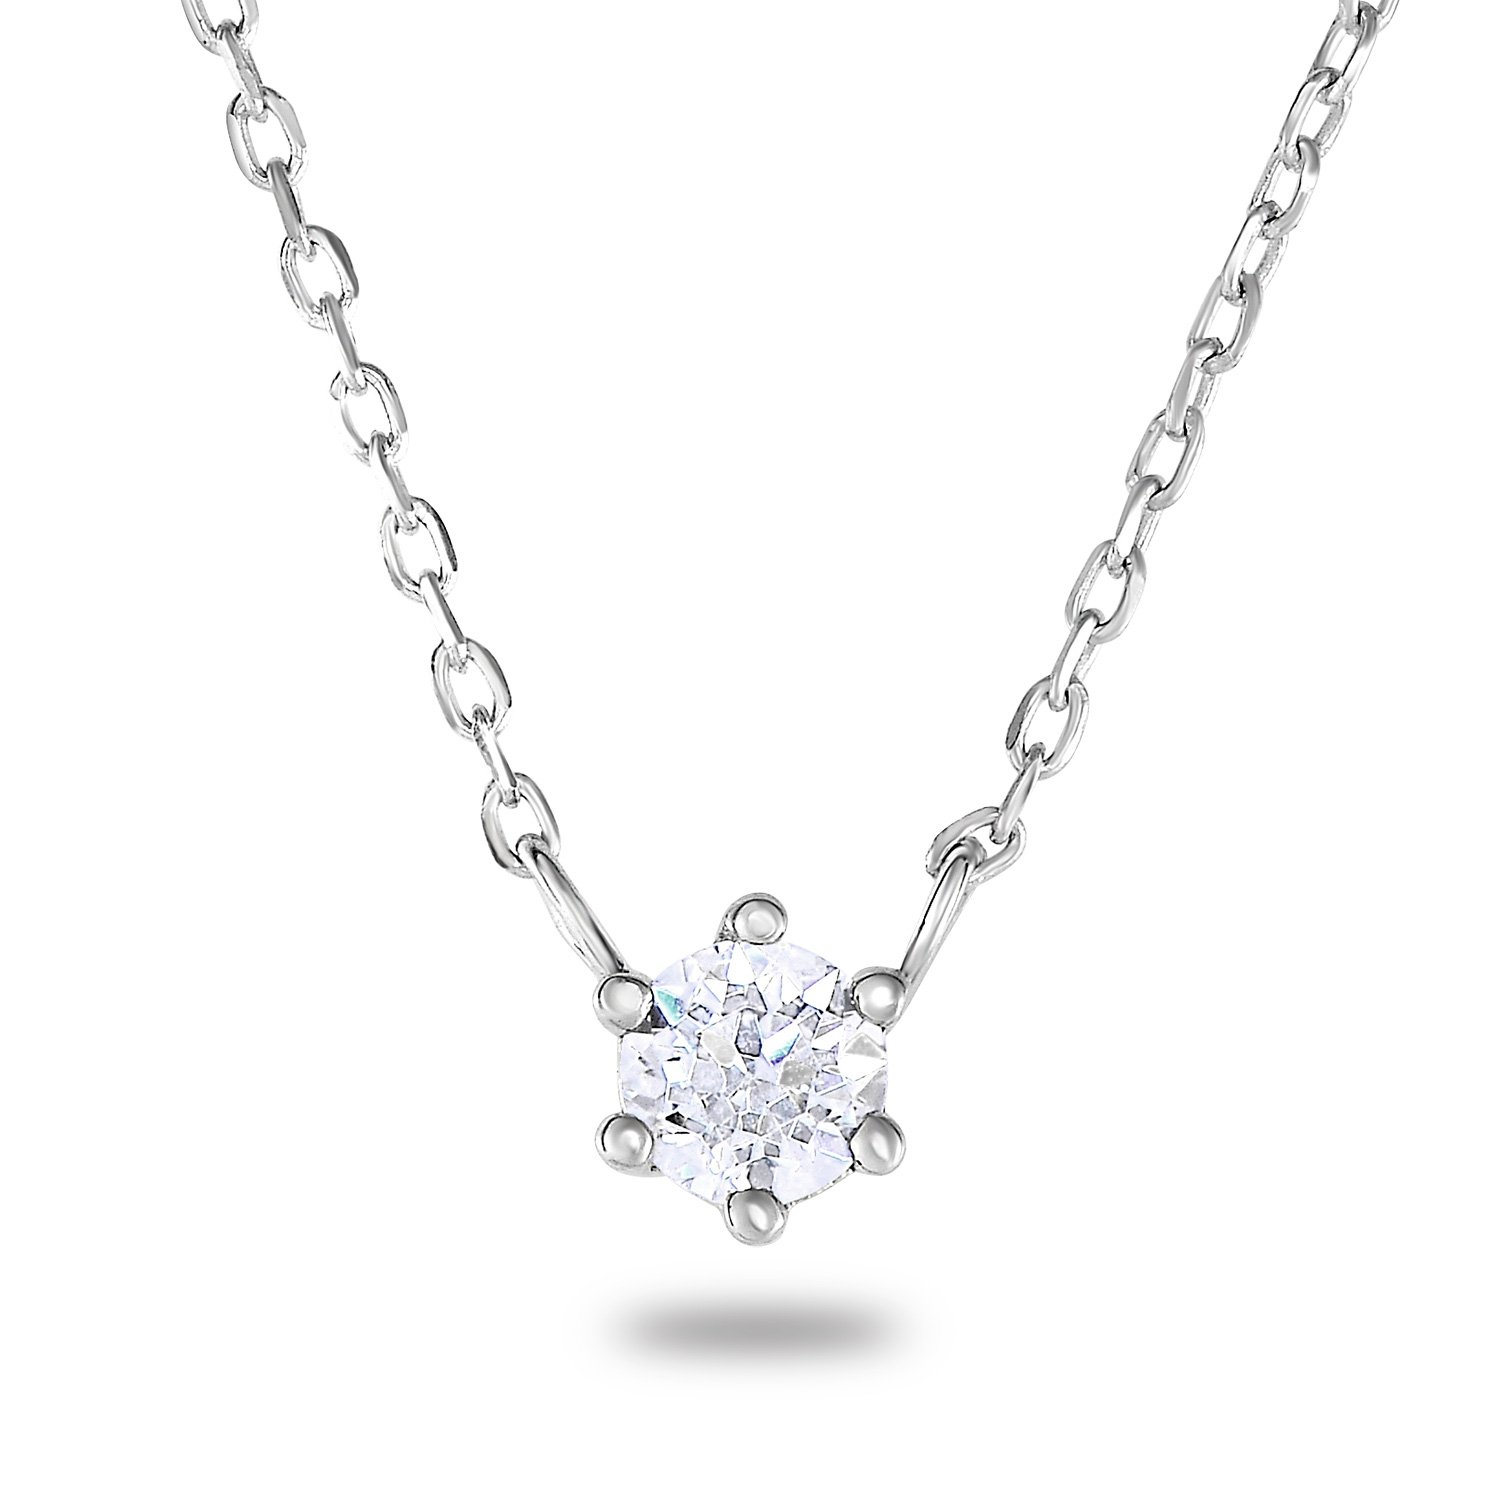 Rhodium-Plated Sterling Silver Cubic Zirconia 6 Prongs Set Solitaire Chain Necklace, 18\